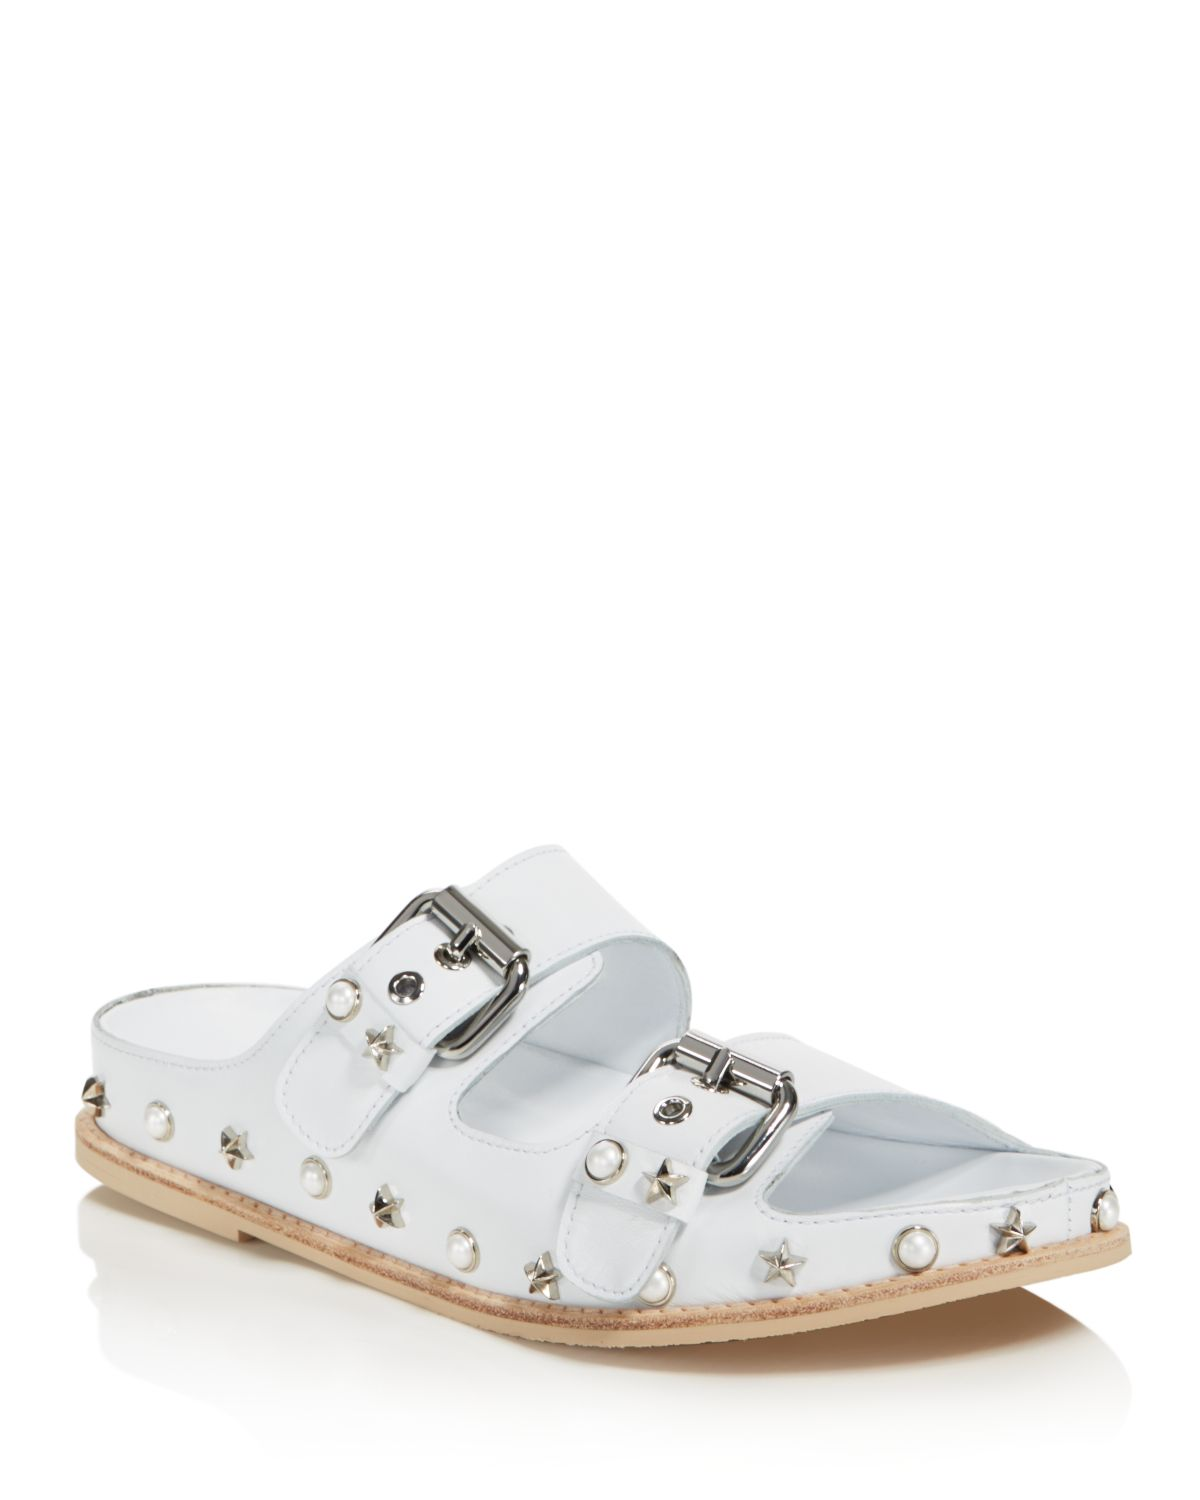 Stuart Weitzman Women's Sandbar Embellished Leather Sandals